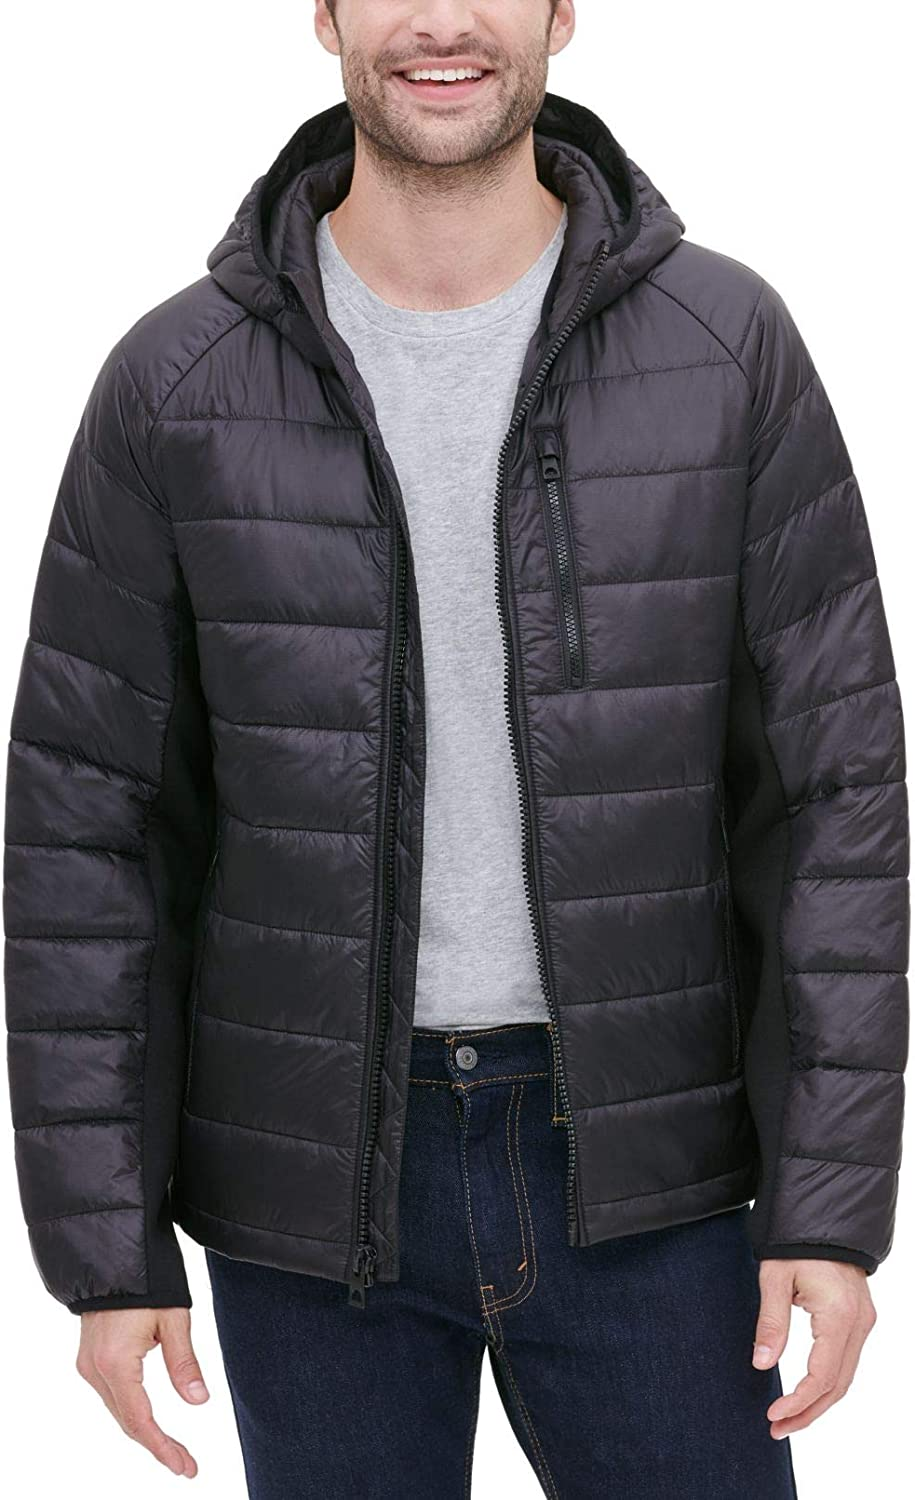 GUESS Men's Wind & Water Resistant Hooded Puffer Jacket with Side Stretch Panels